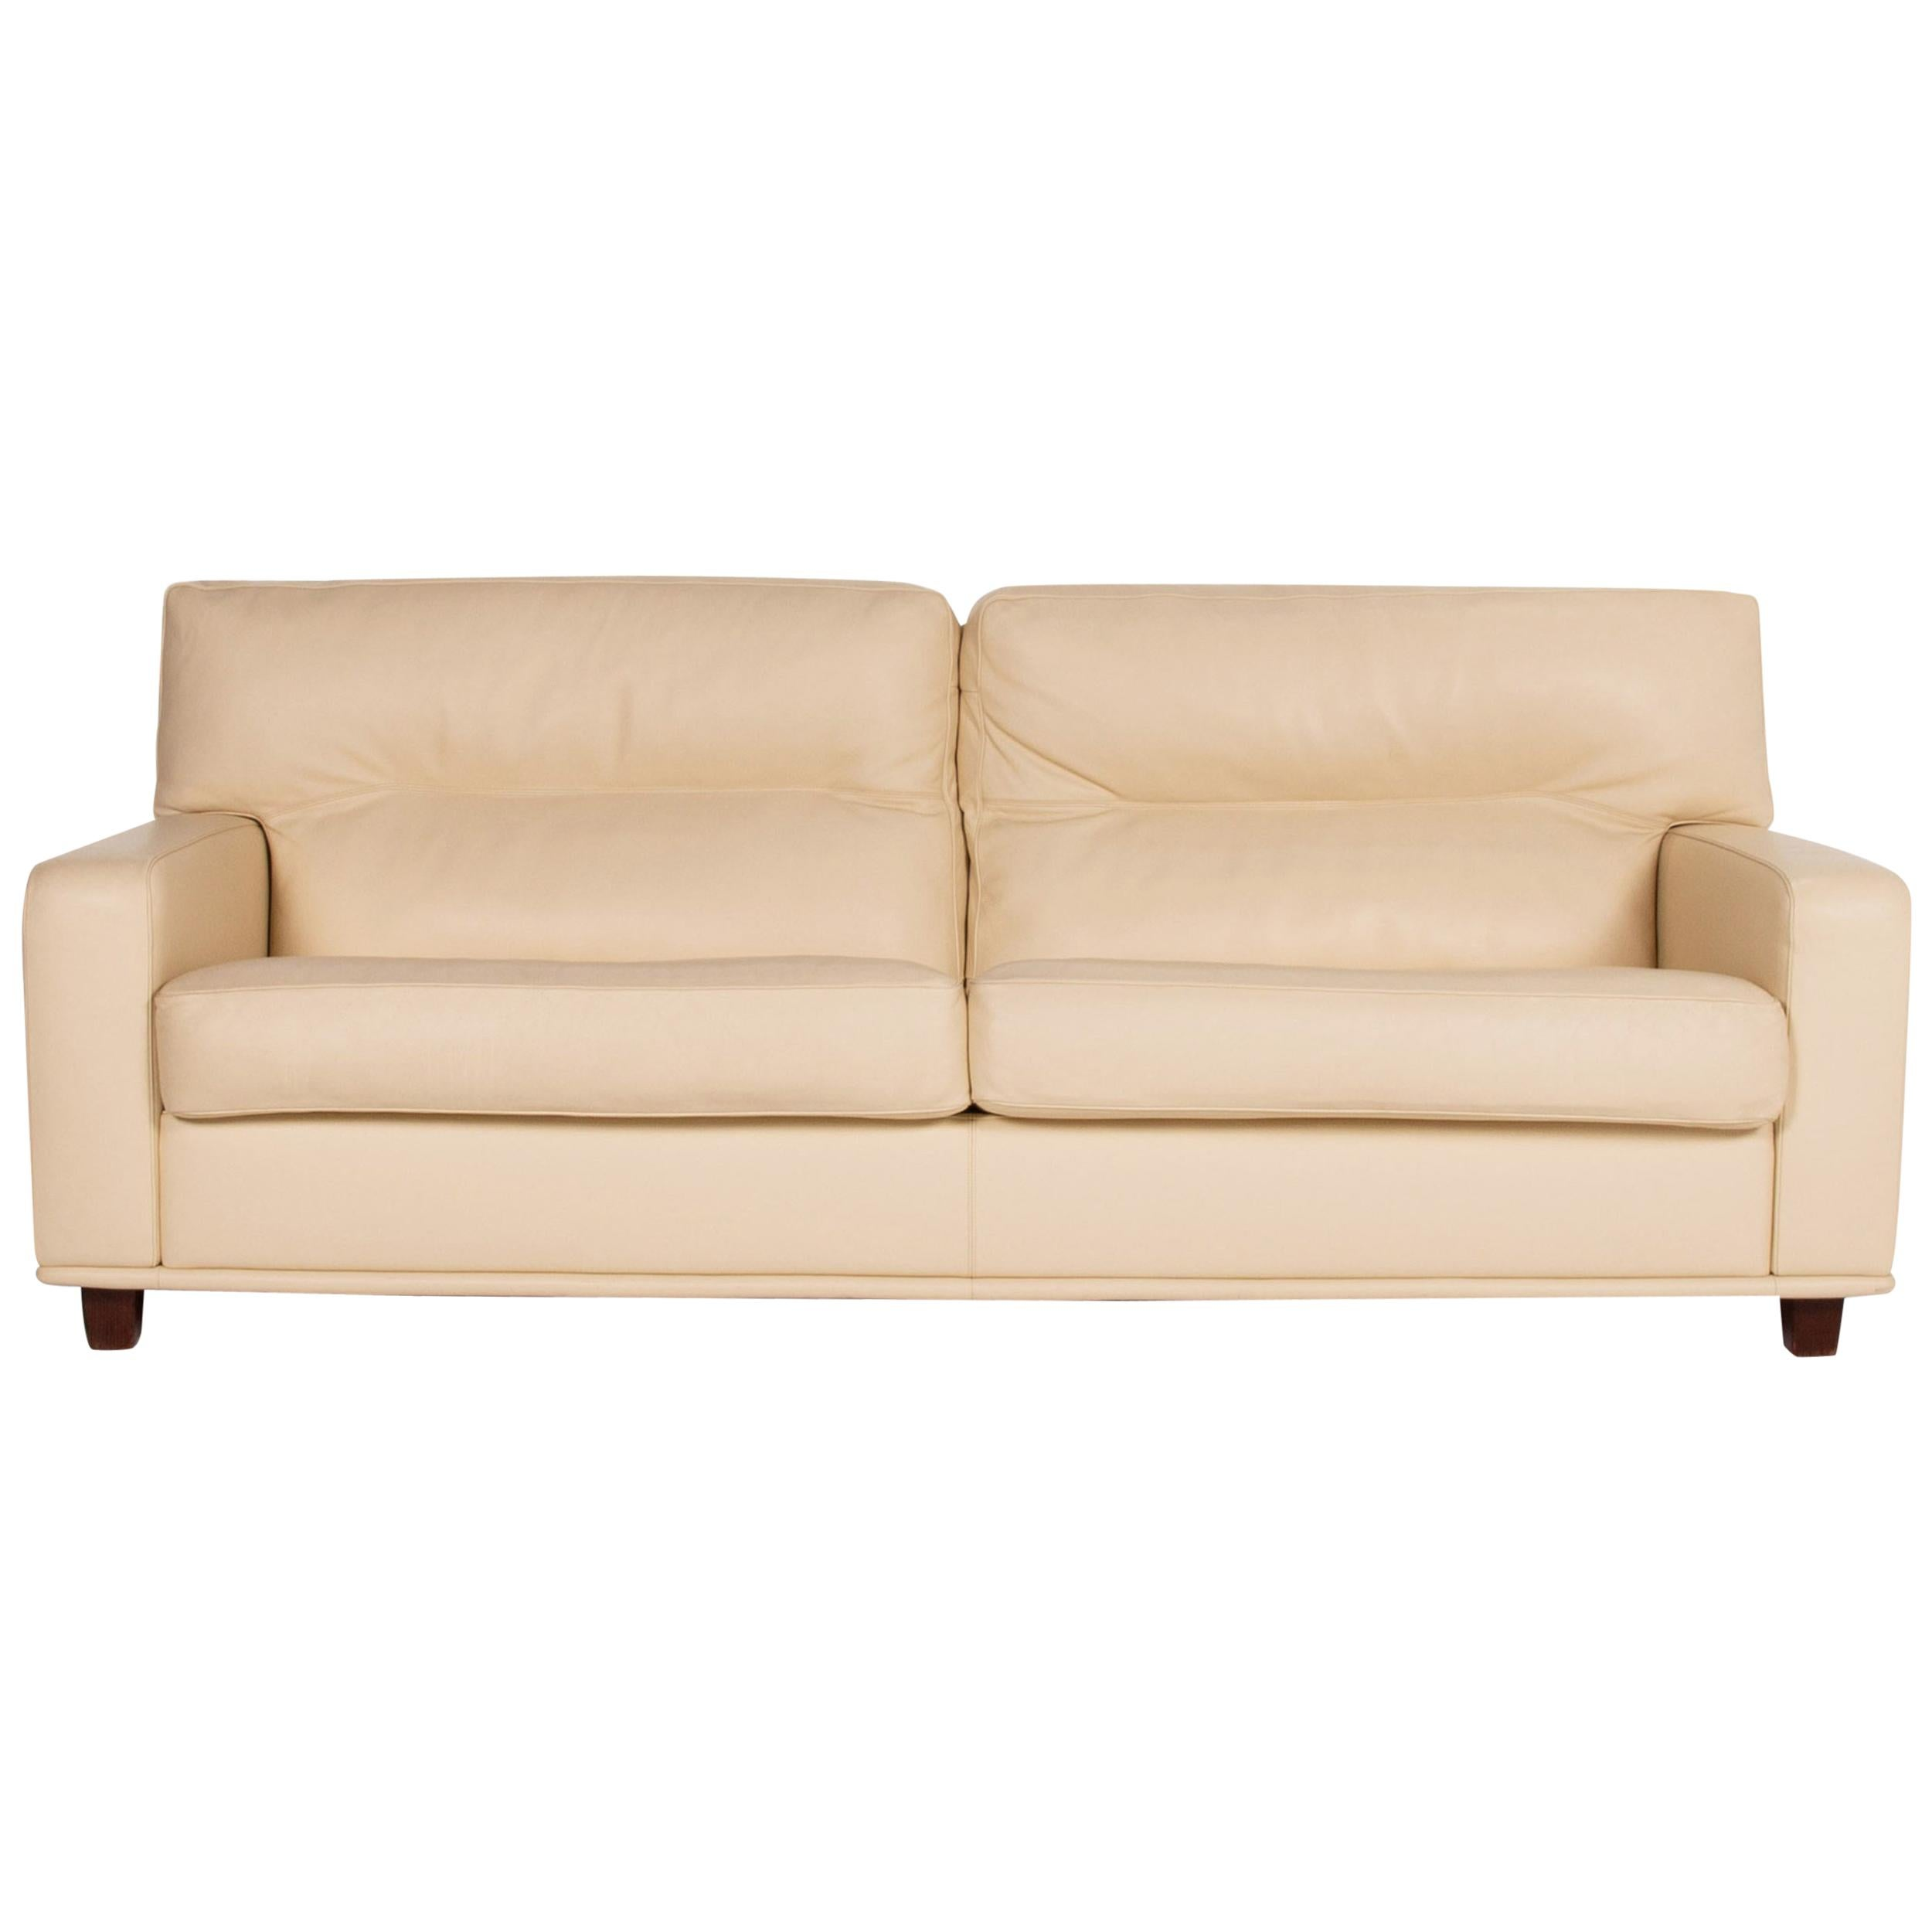 Poltrona Frau Leather Sofa Cream Two-Seat Couch